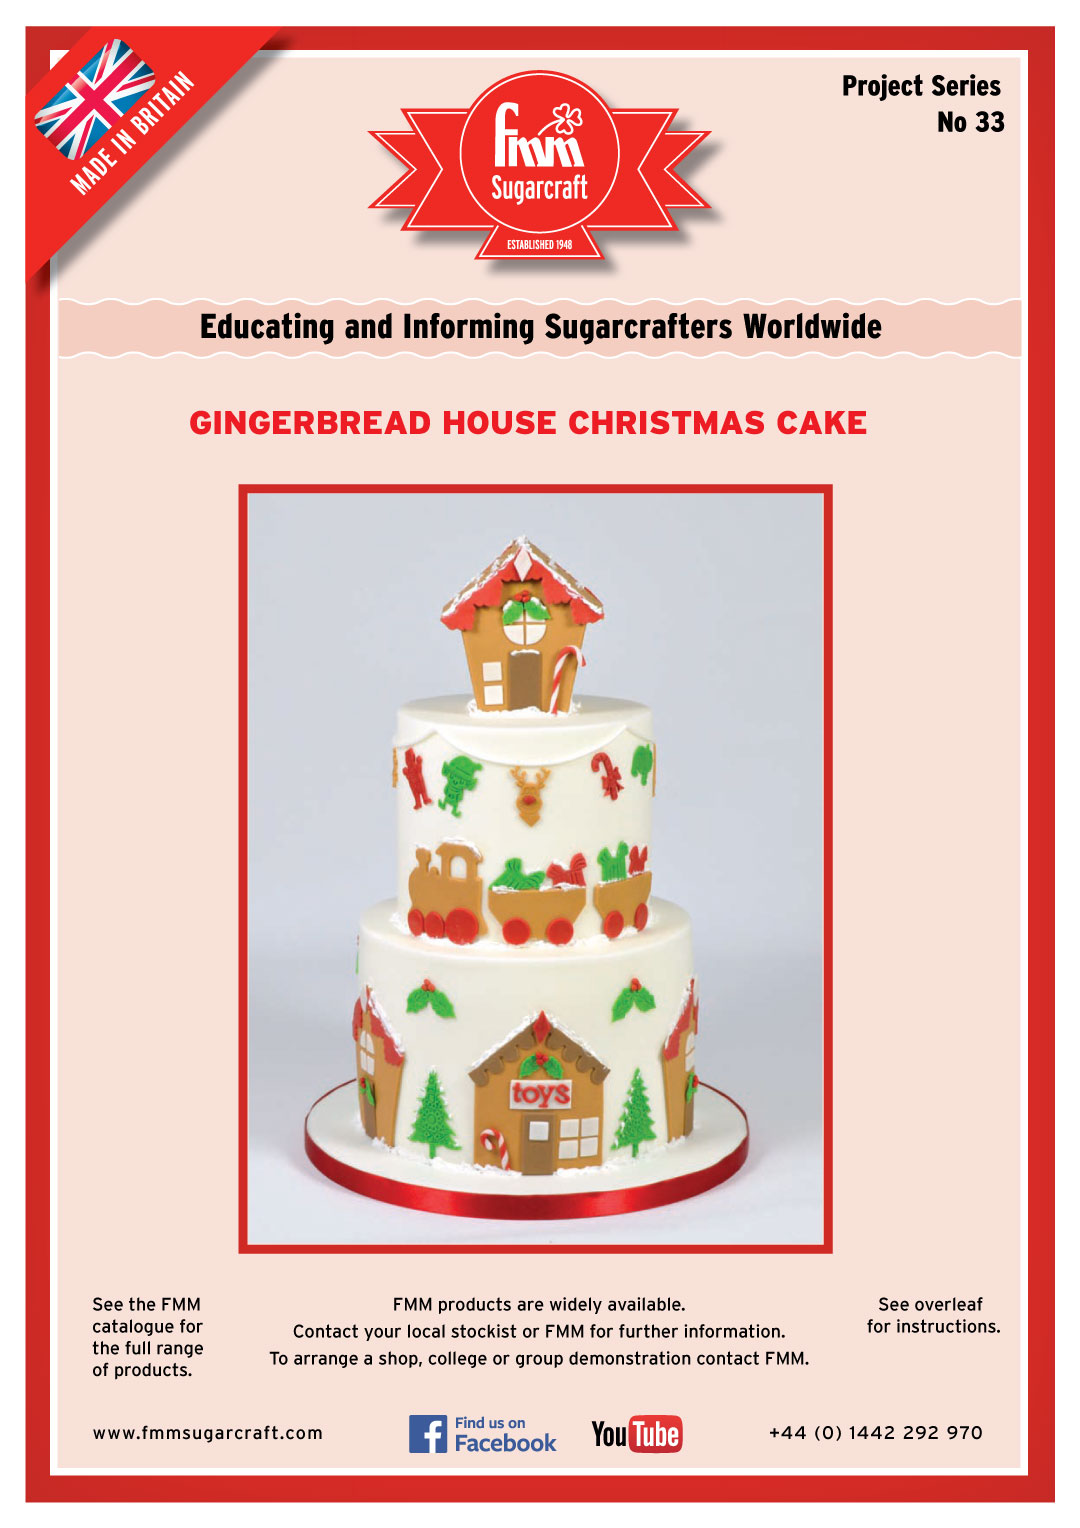 Make a Gingerbread House Christmas Cake